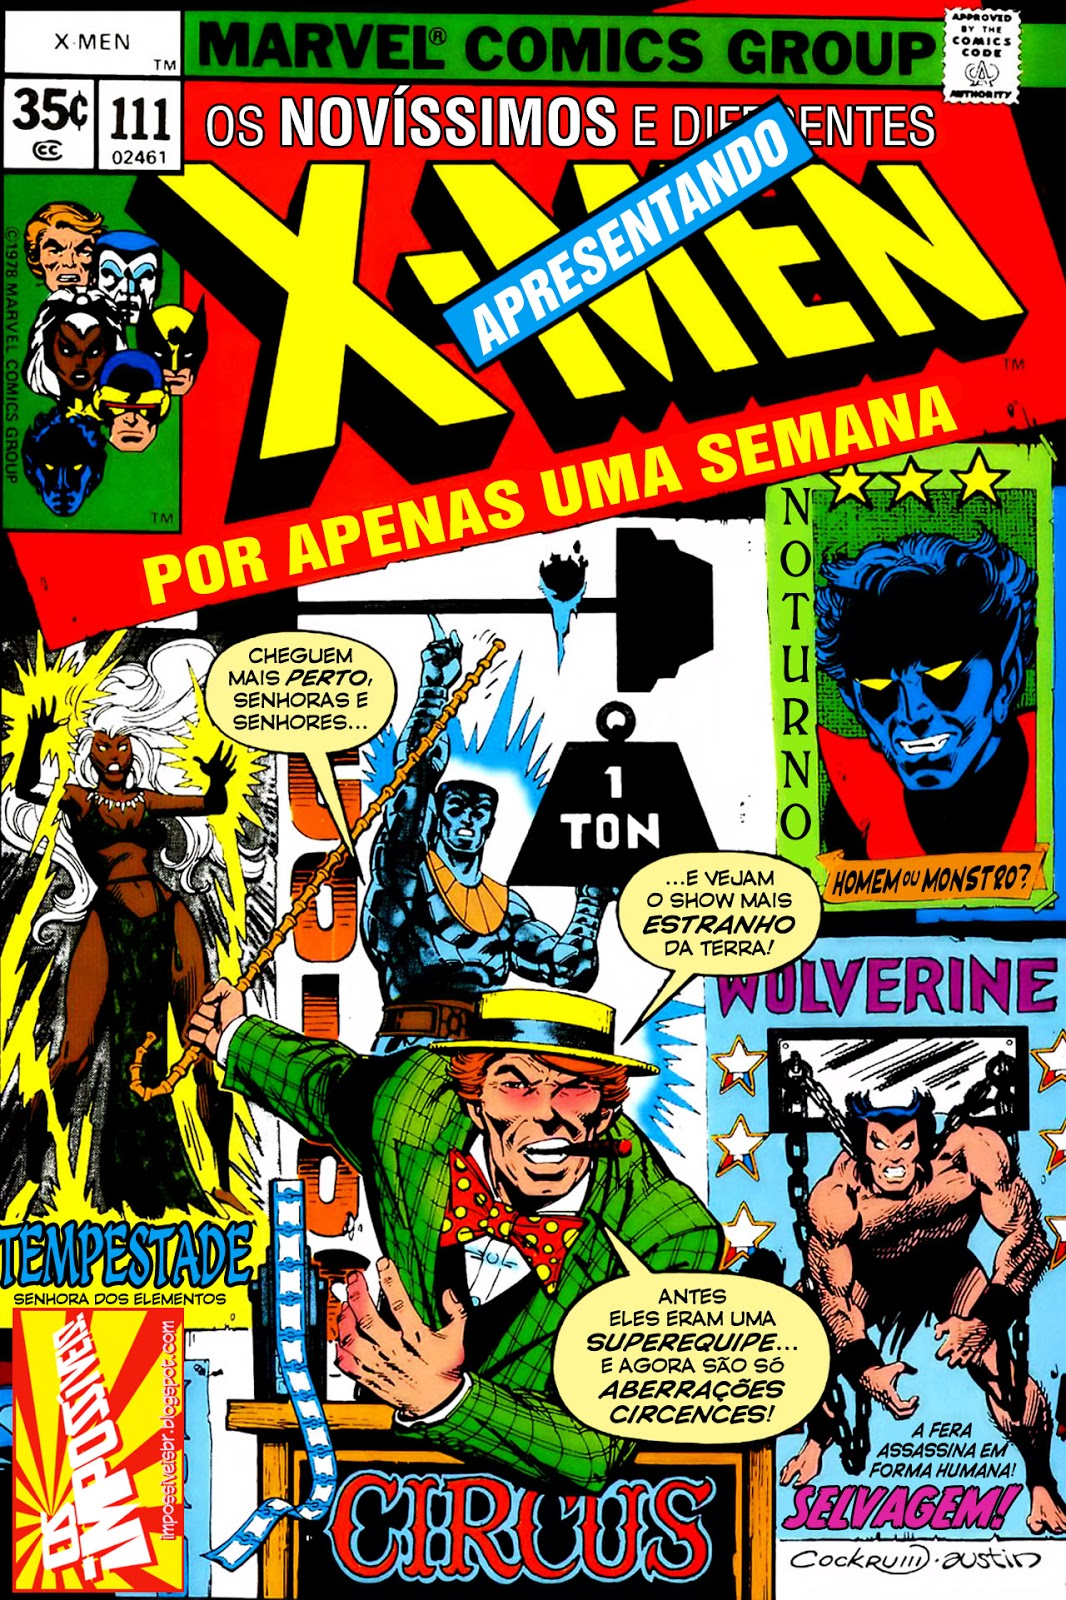 http://www.mediafire.com/download/24d3ko9d511ea6u/Os.Fabulosos.X-Men.(X-Men.V1).111.HQBR.28OUT13.Os.Impossiveis.cbr